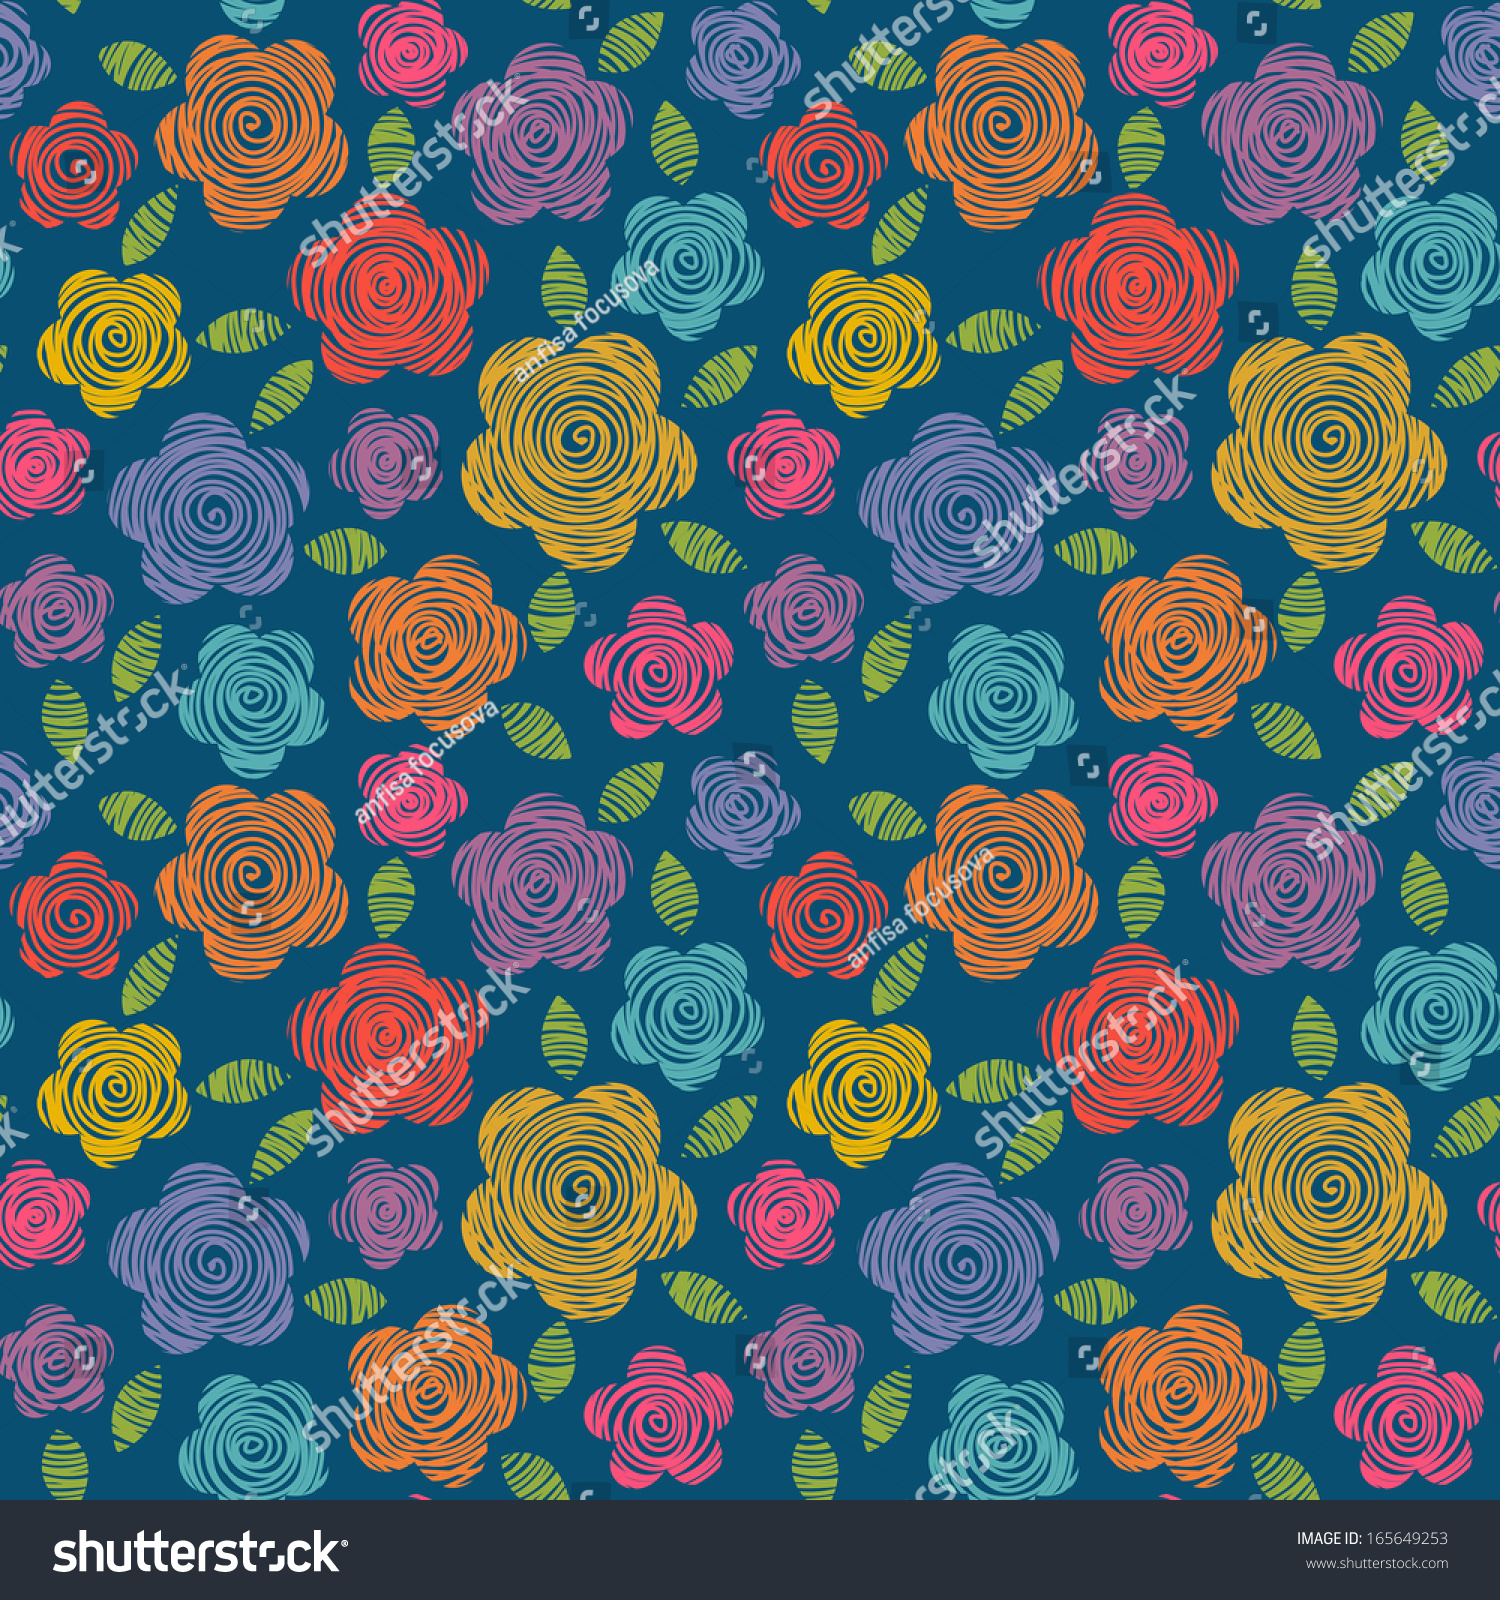 Seamless pattern with flowers leaves of color doodles made using stencil abstract summery simple